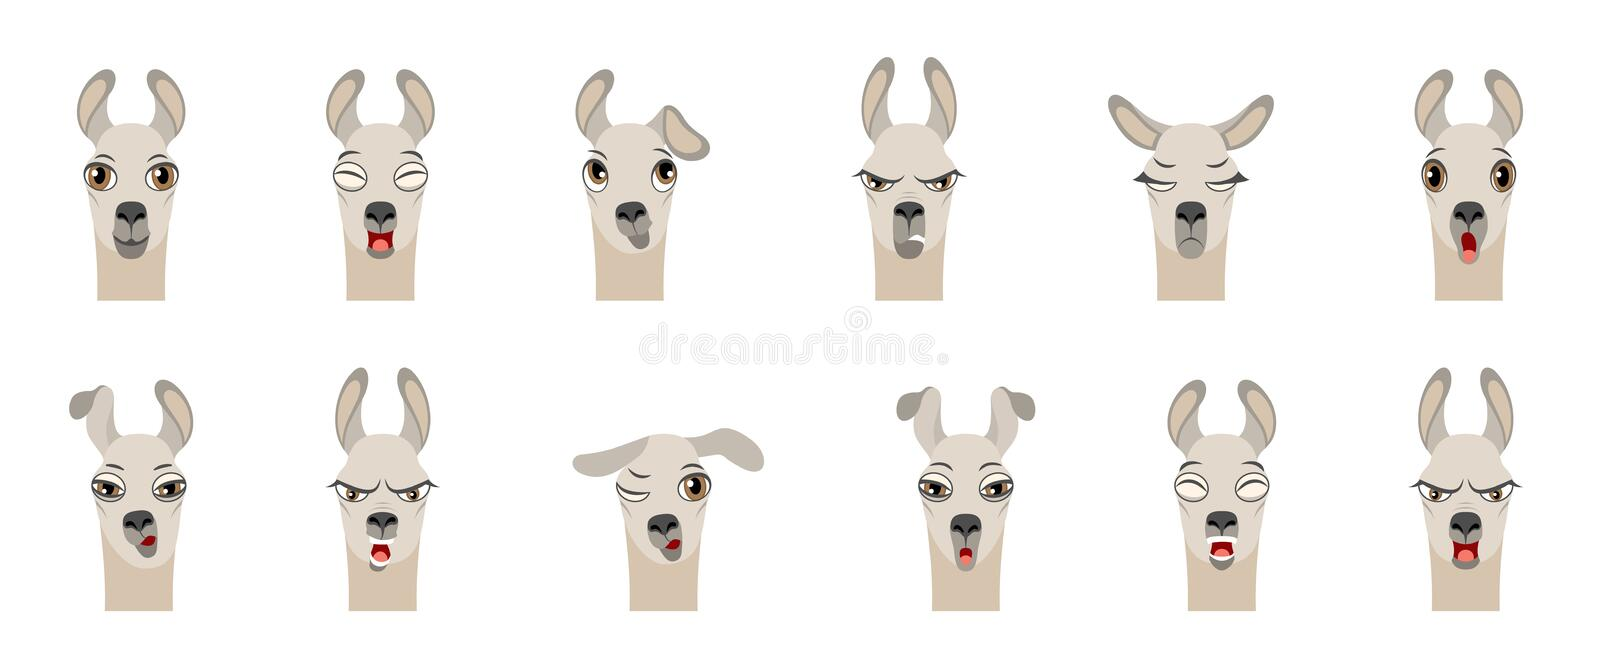 Heads of Lama with Different Emotions - Smiling, Sad, Anger, Aggression, Drowsiness, Fatigue, Malice, Surprise, Fear. Heads of Lama with Different Emotions stock illustration